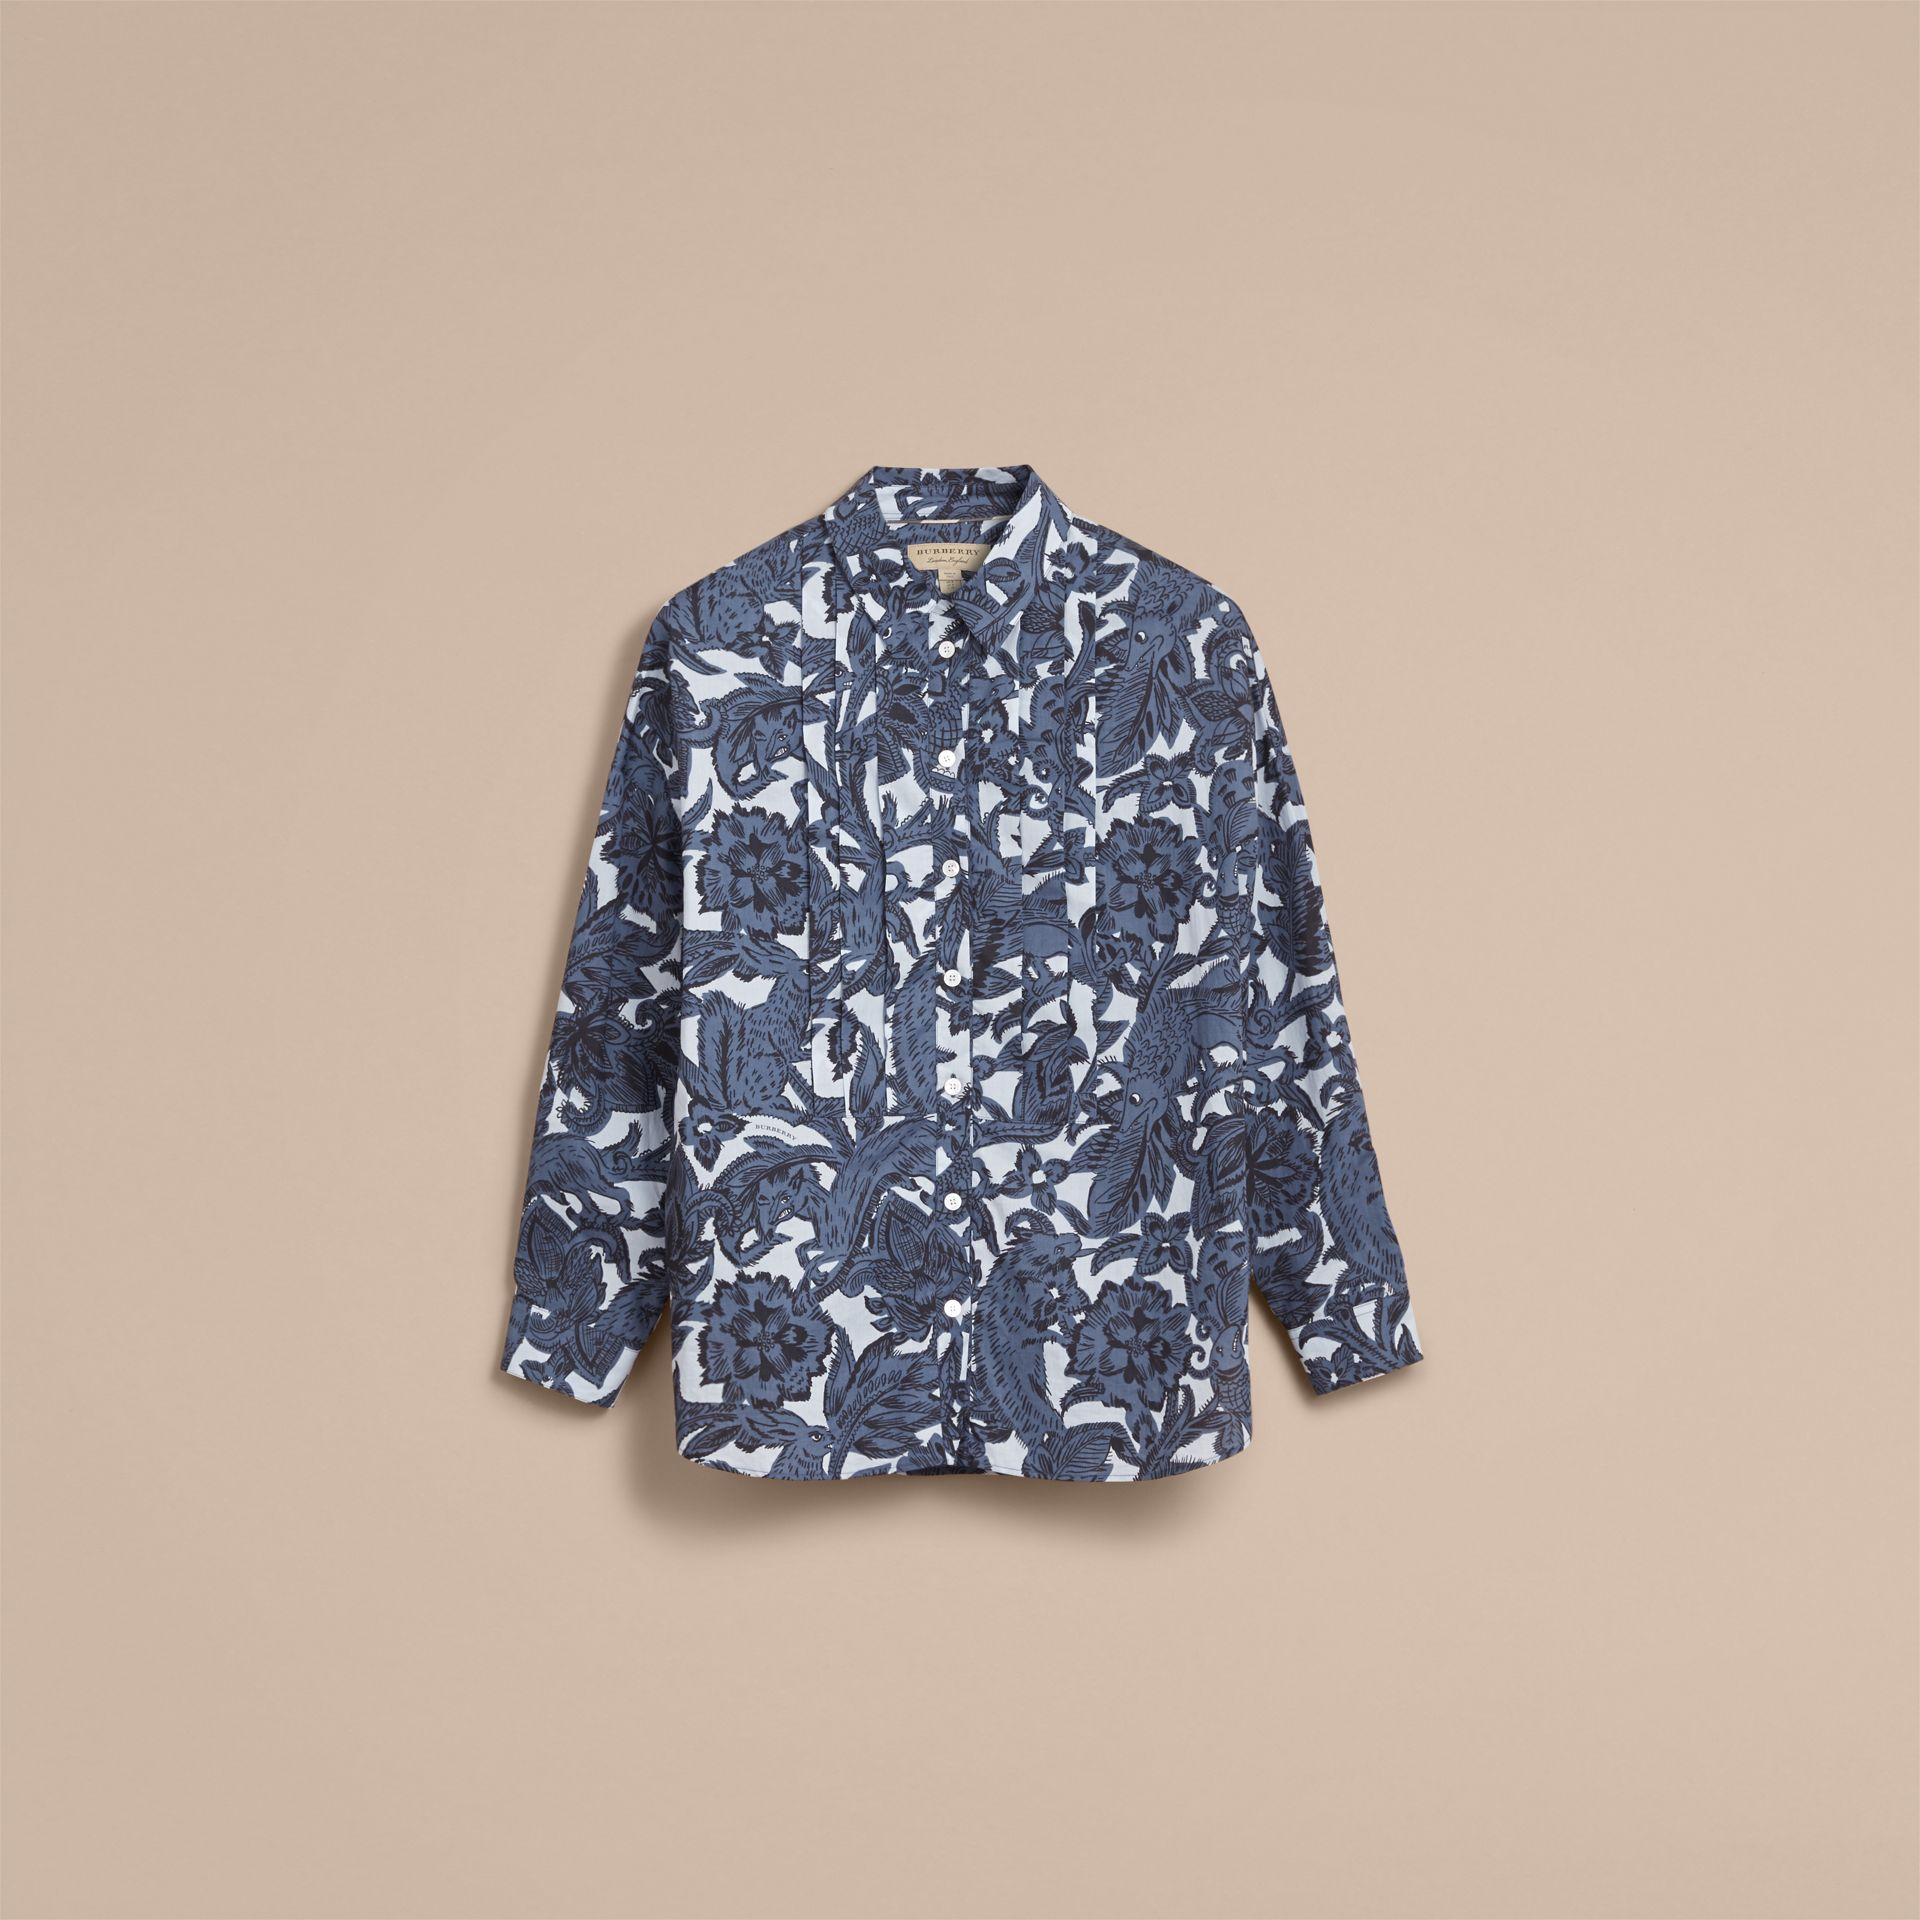 Pleated Bib Beasts Print Cotton Shirt in Stone Blue - Women | Burberry Australia - gallery image 4